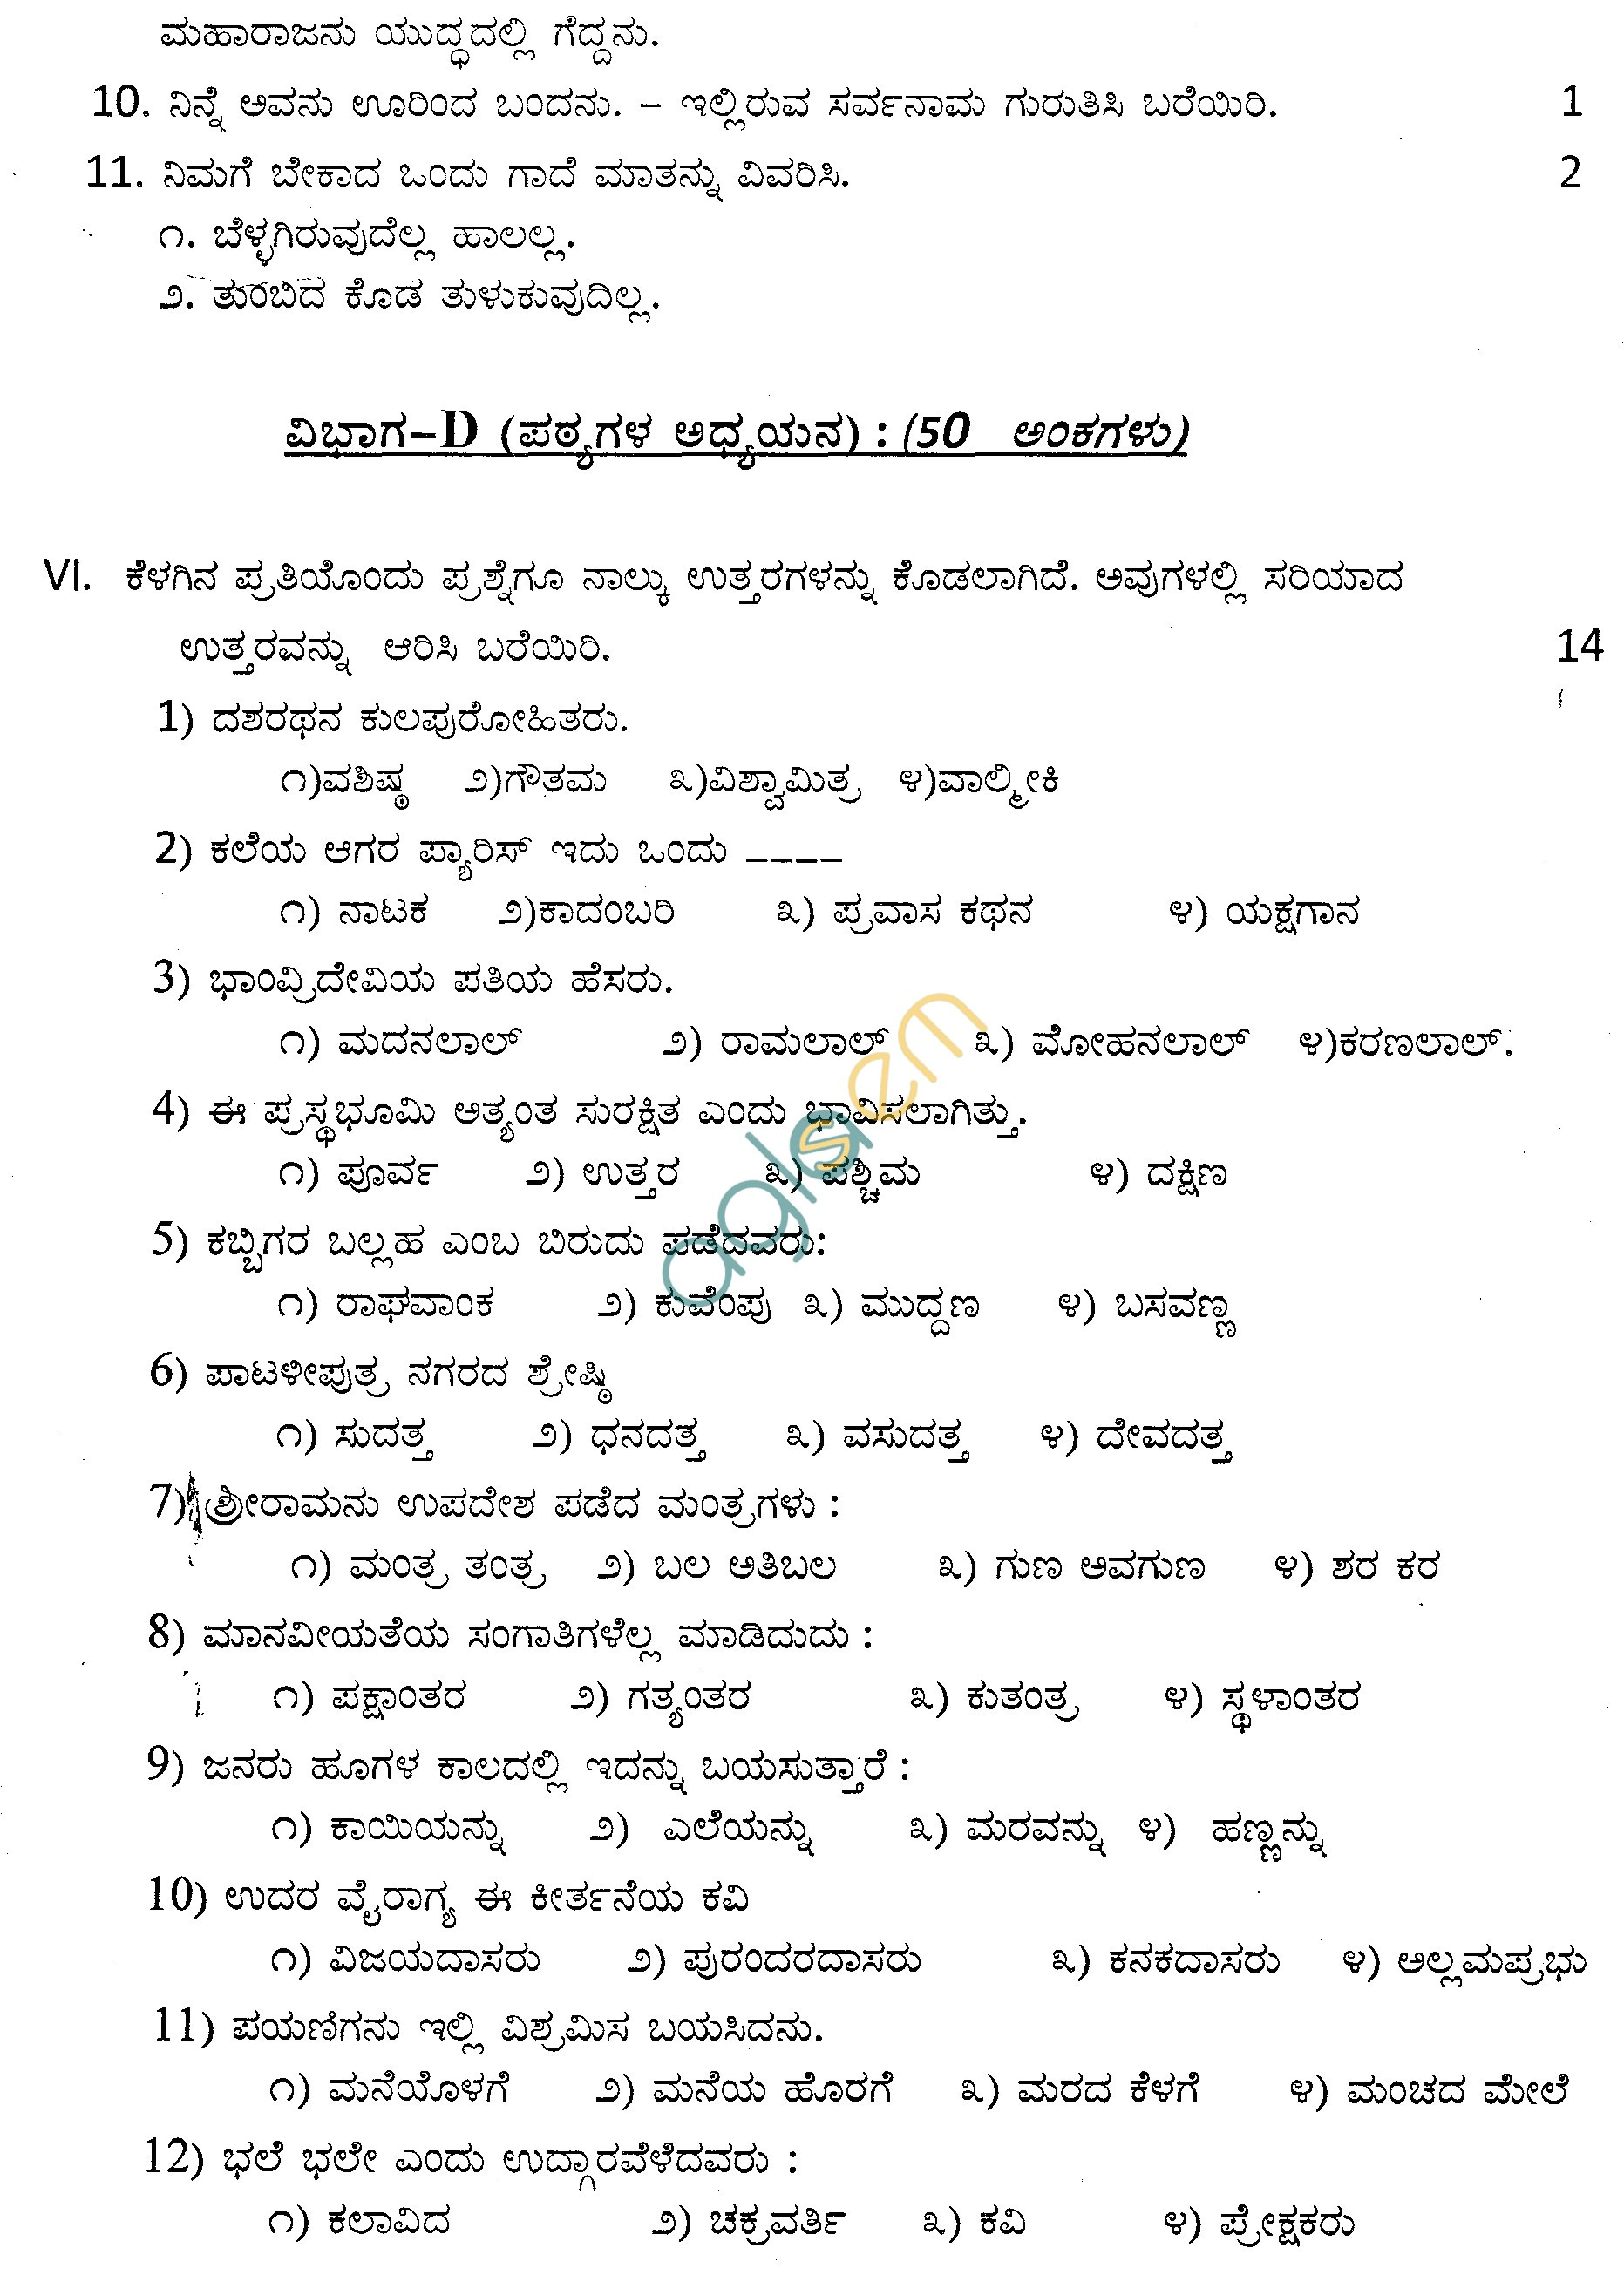 Cbse Sample Papers For Class 9 And Class 10 Sa2 Kannada